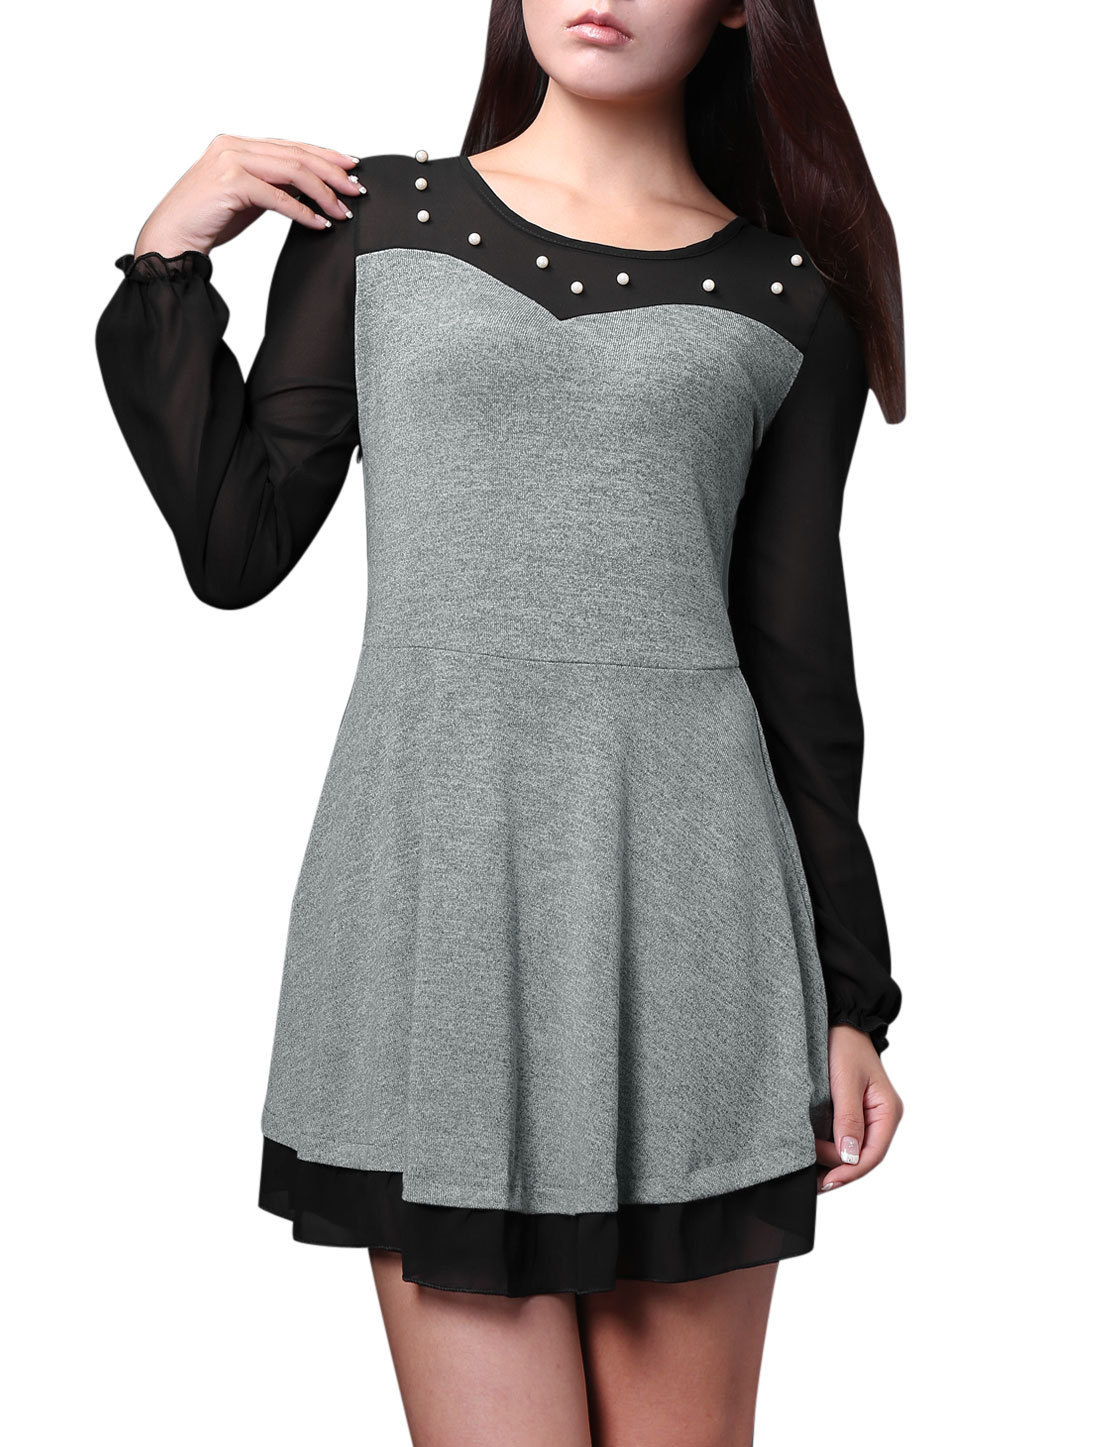 Lady Round Neck Chiffon Panel Fashion Casual Dress Light Gray Black S